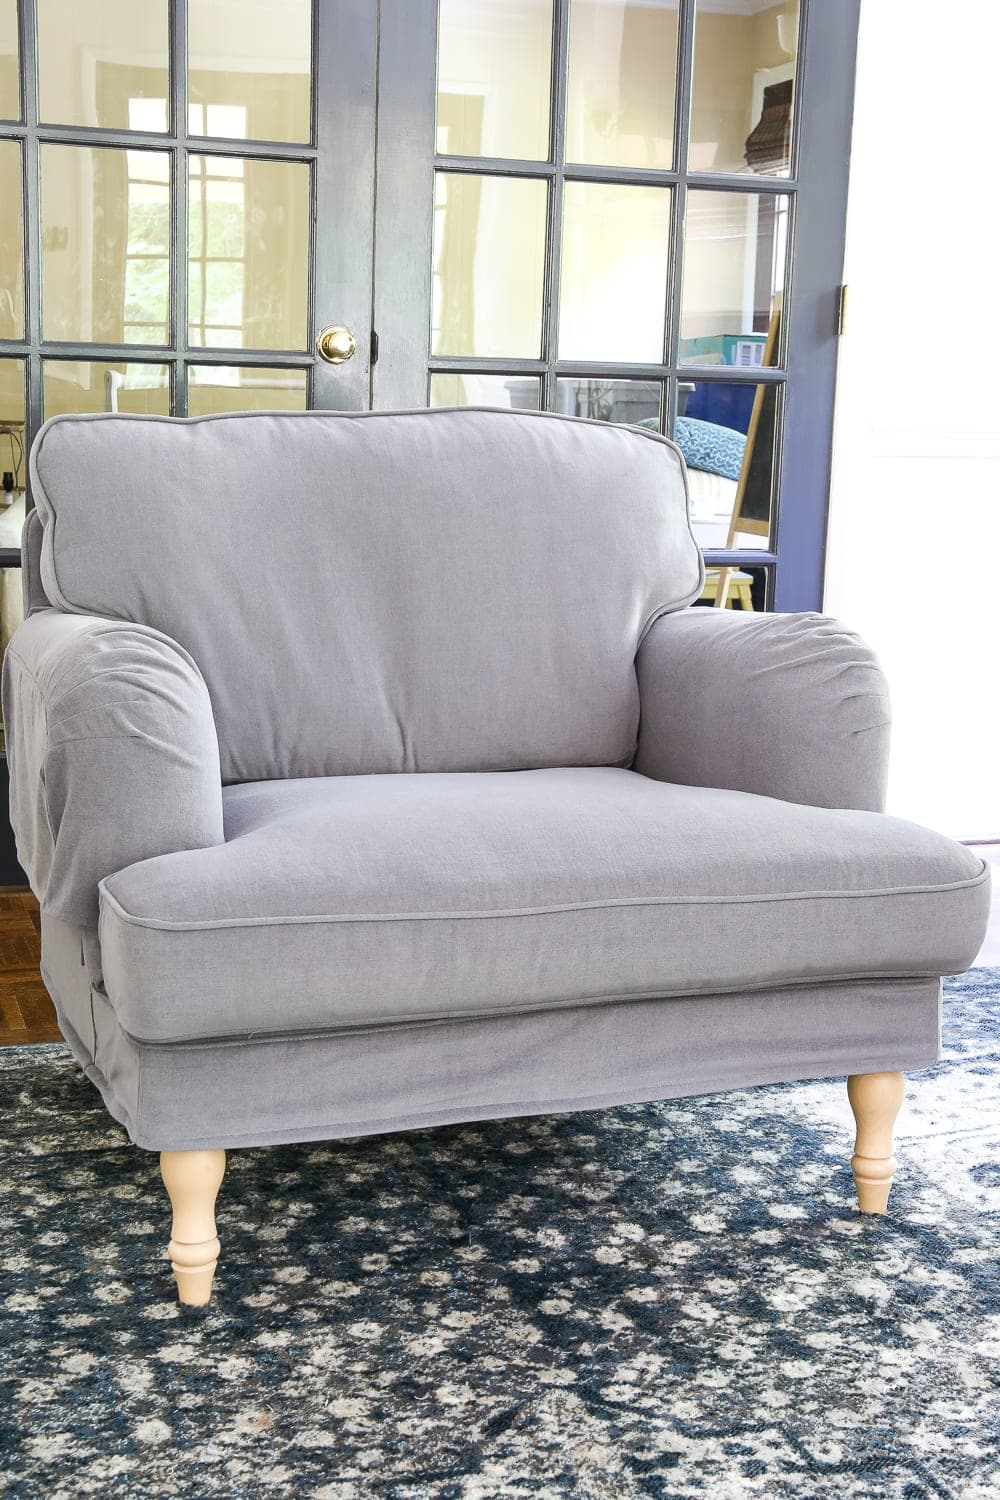 Ikea 39 s new sofa and chairs and how to keep them clean for Ikea sofa set